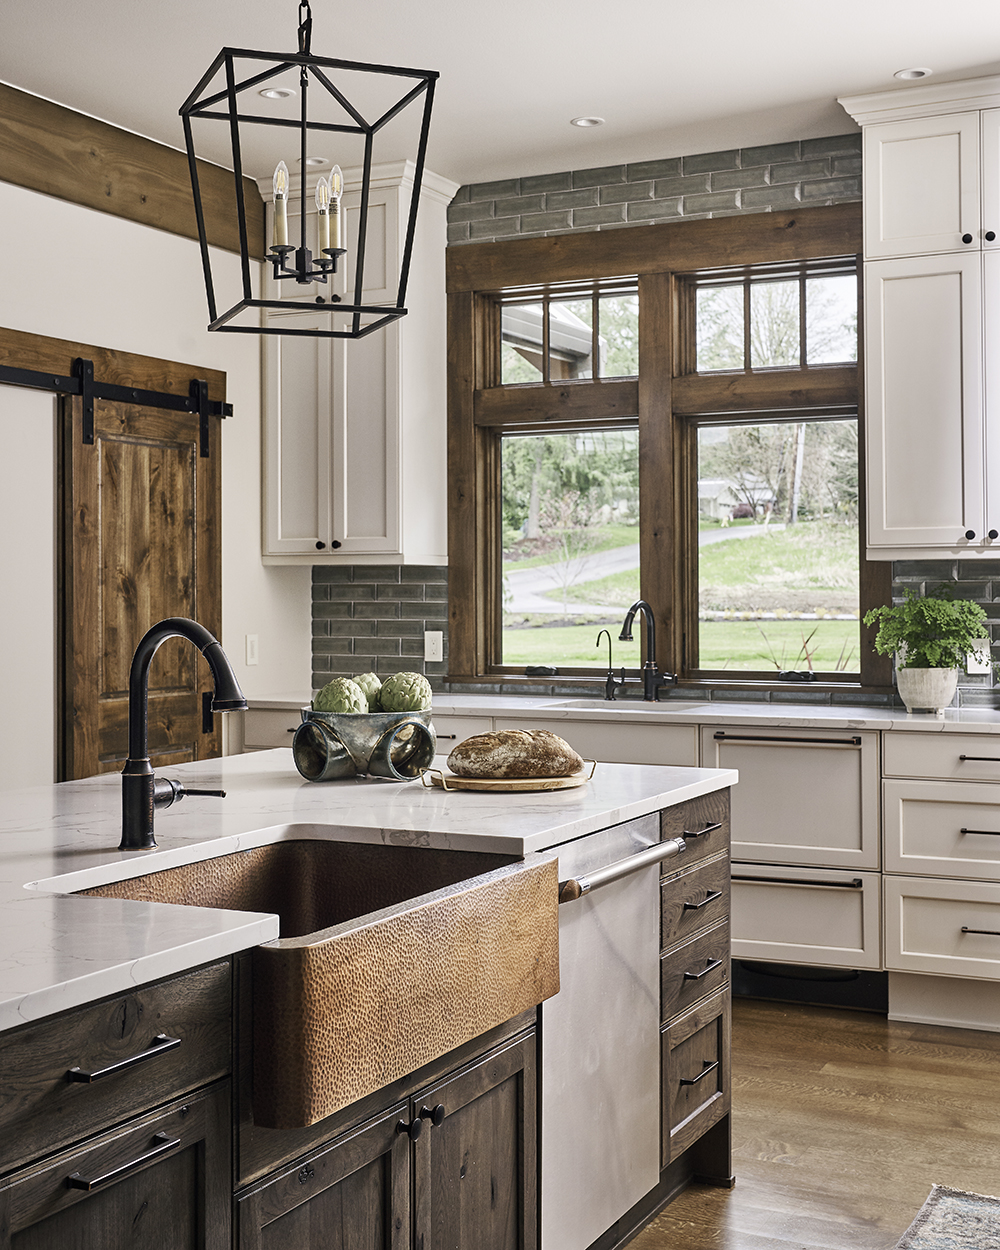 copper sink, thompson traders, oil rubbed bronze, dxv plumbing, ann sacks glass tile, barn door slider, island pendants, windows in kitchen, prep sink design, where to put a prep sink